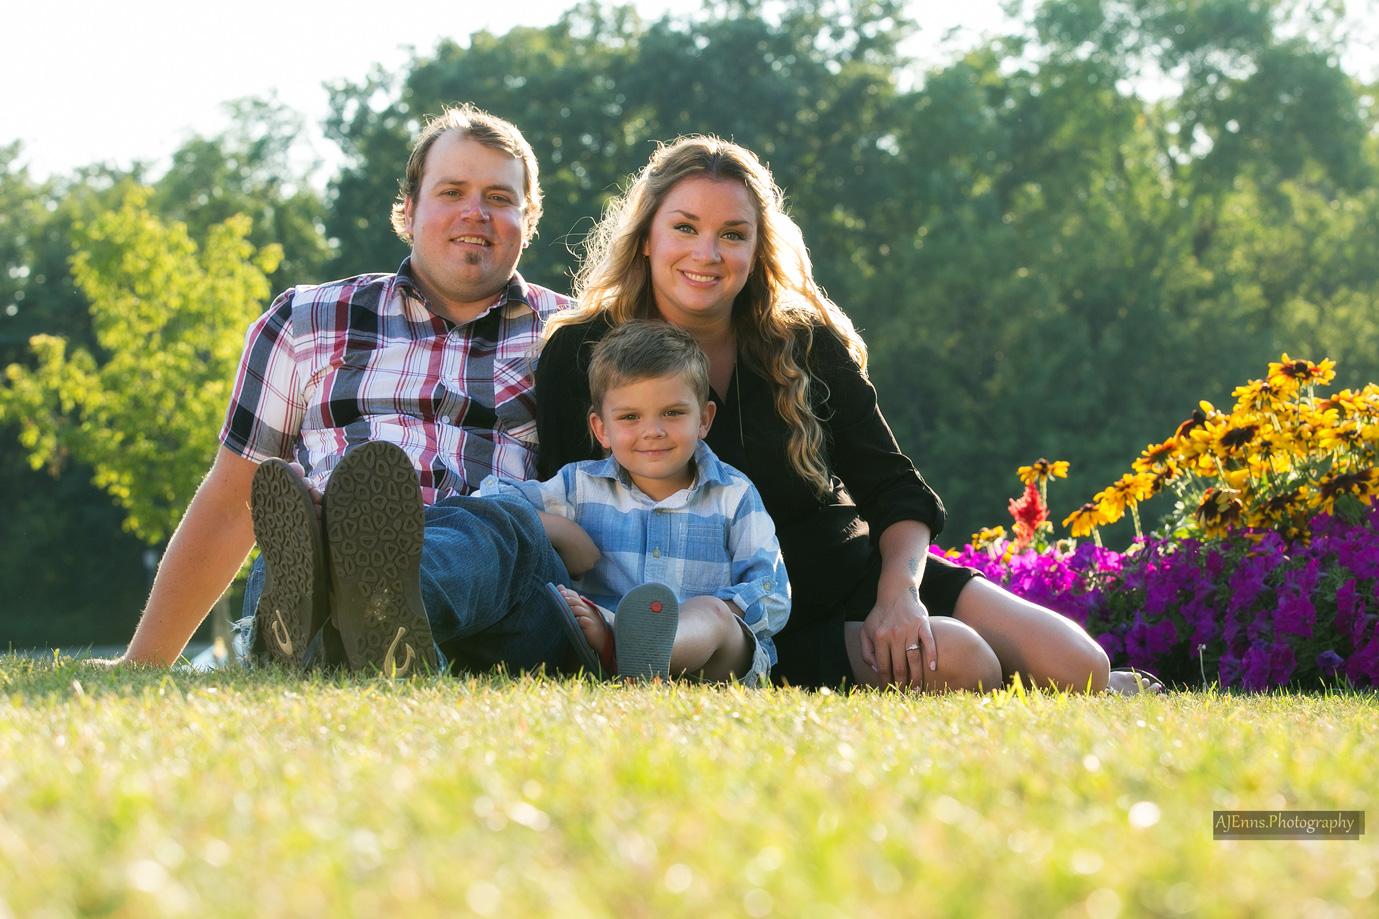 The happy family sitting on the grass by the flowers